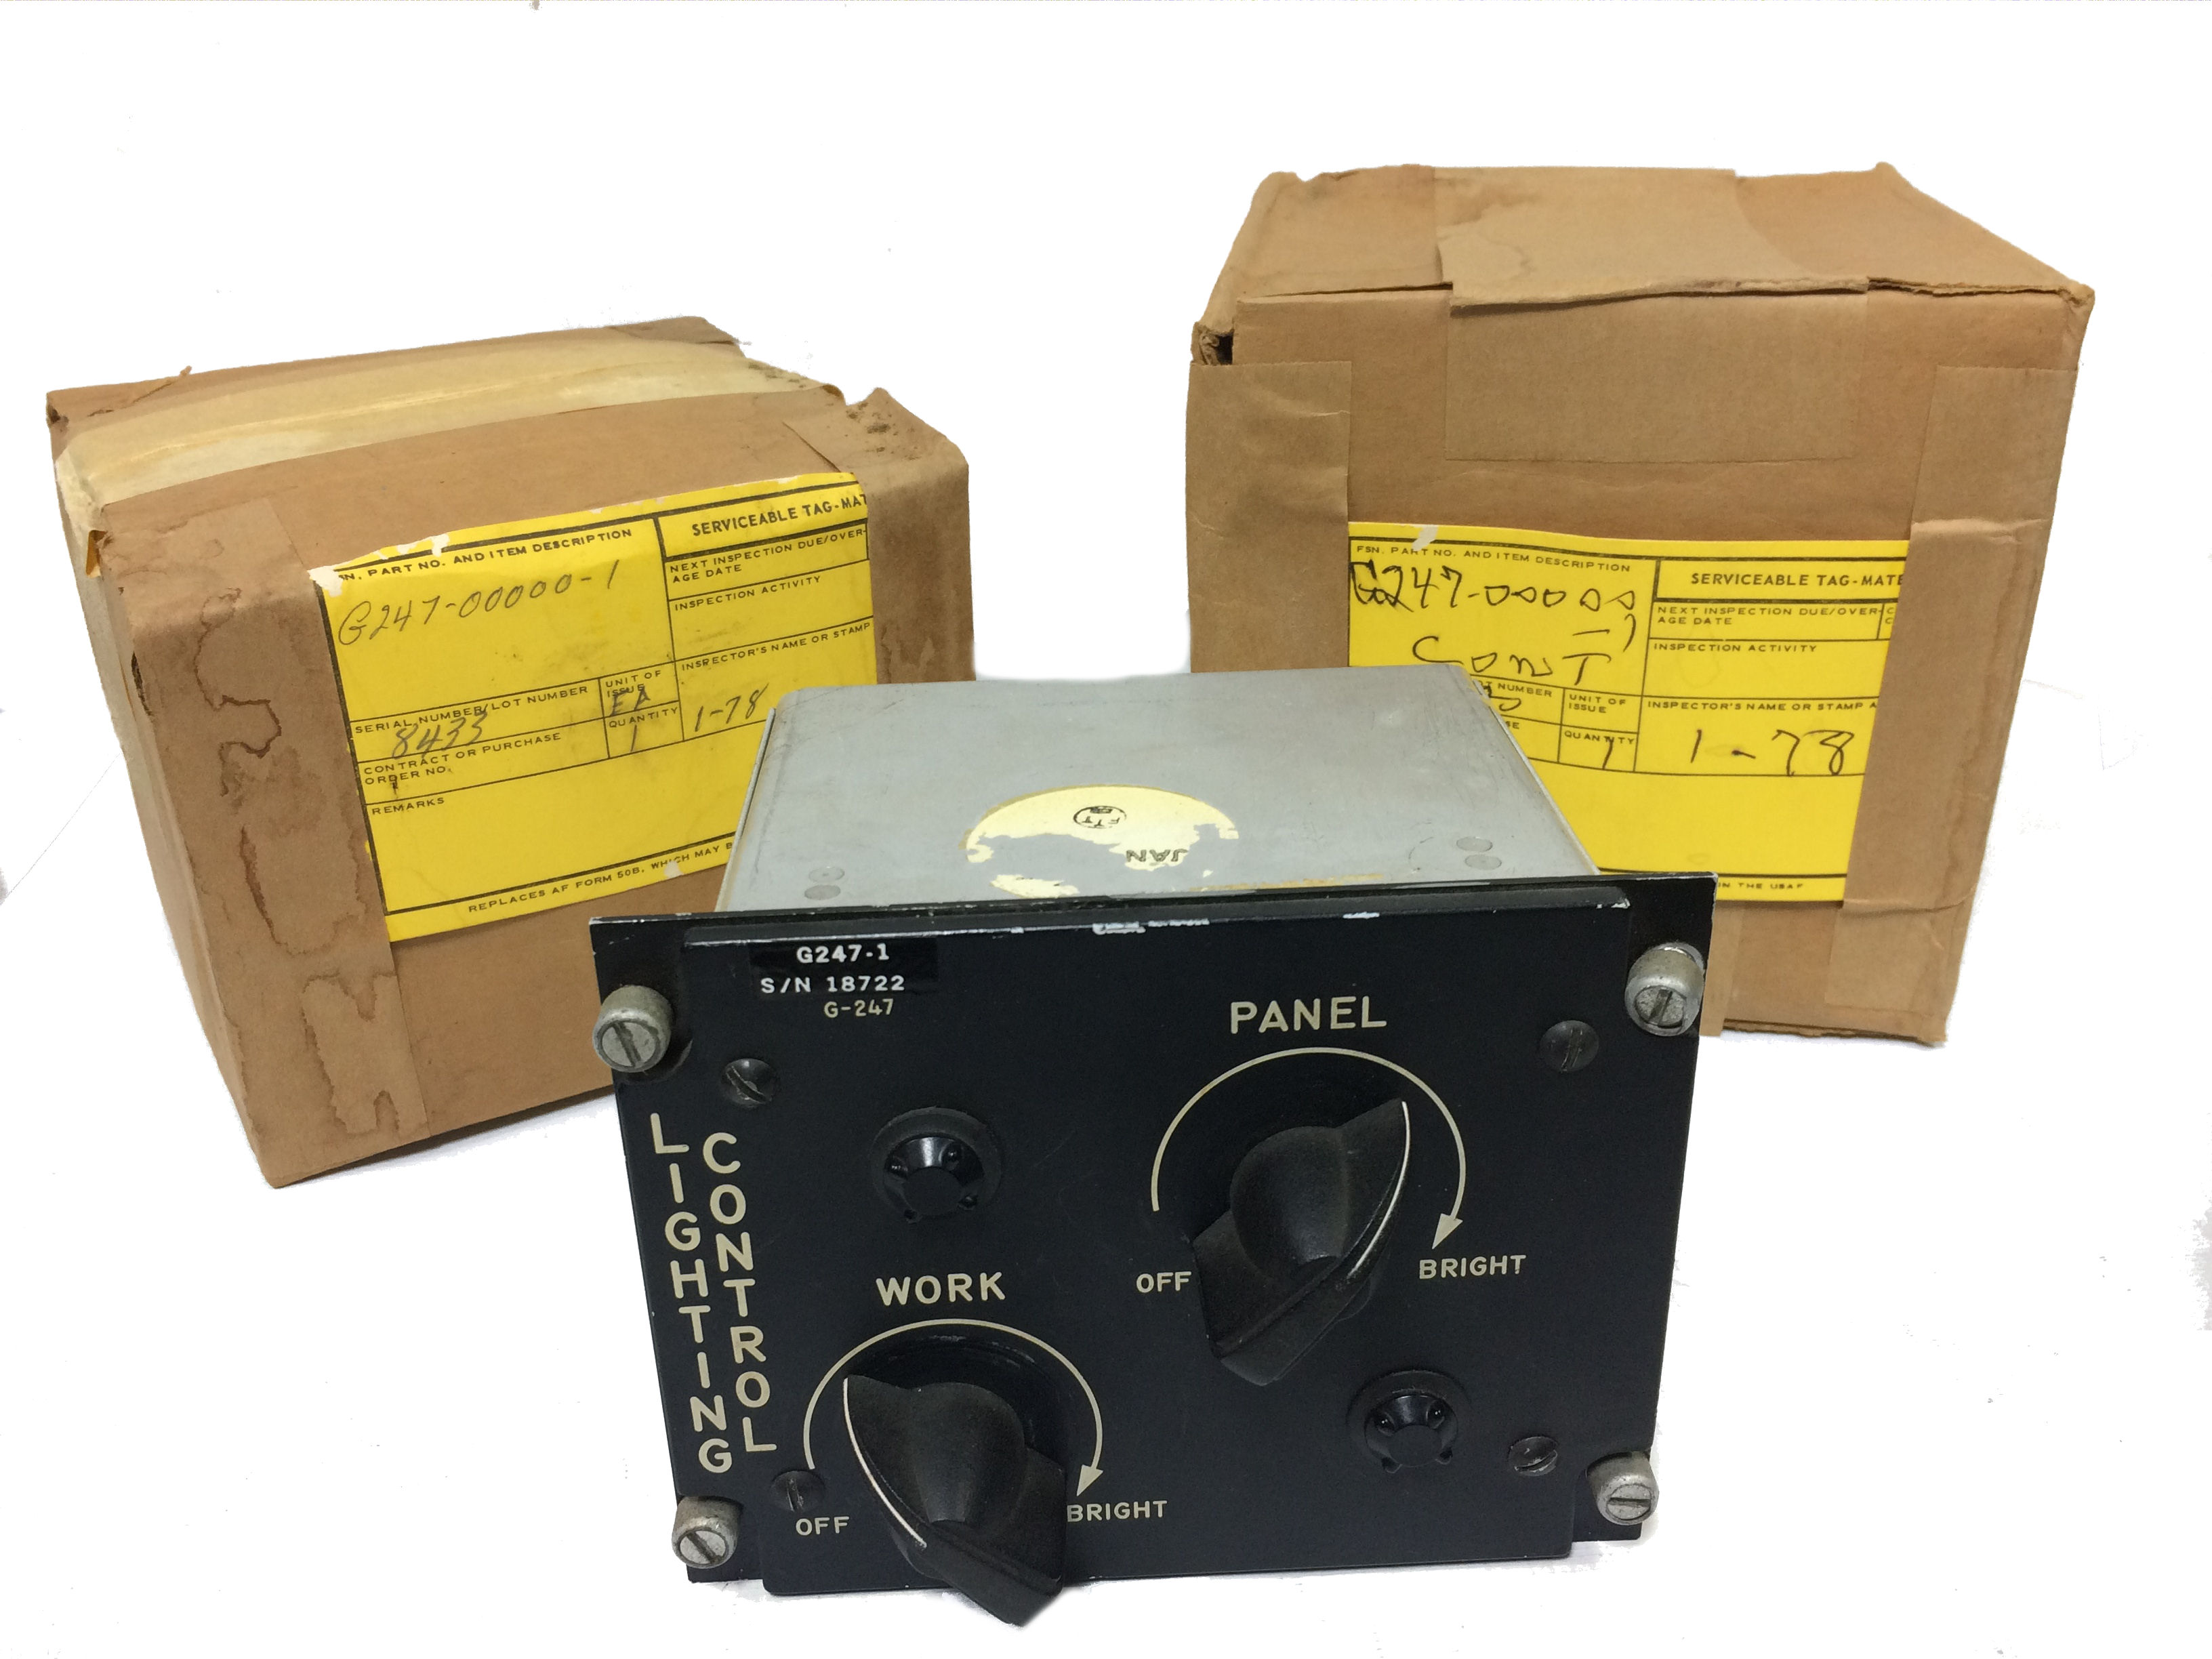 G247 Lighting Control gauge for military aircraft control panel